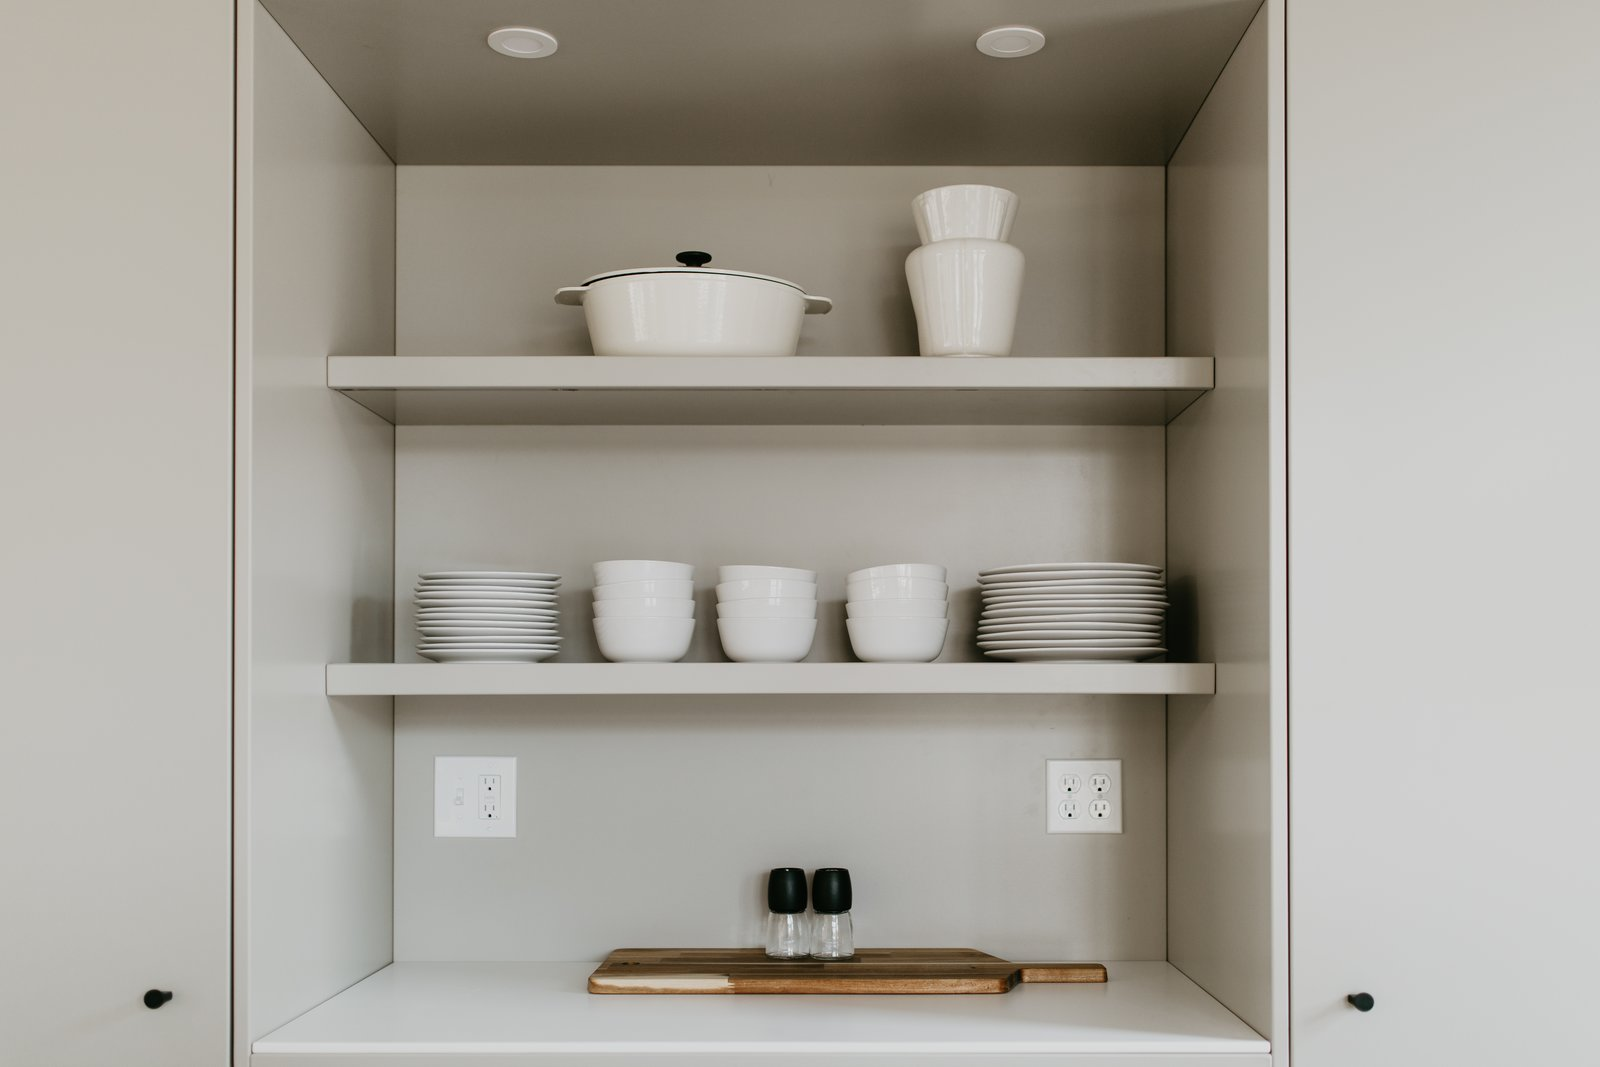 Storage Room and Shelves Storage Type Open shelving   North Shore #7 by Hygge Supply